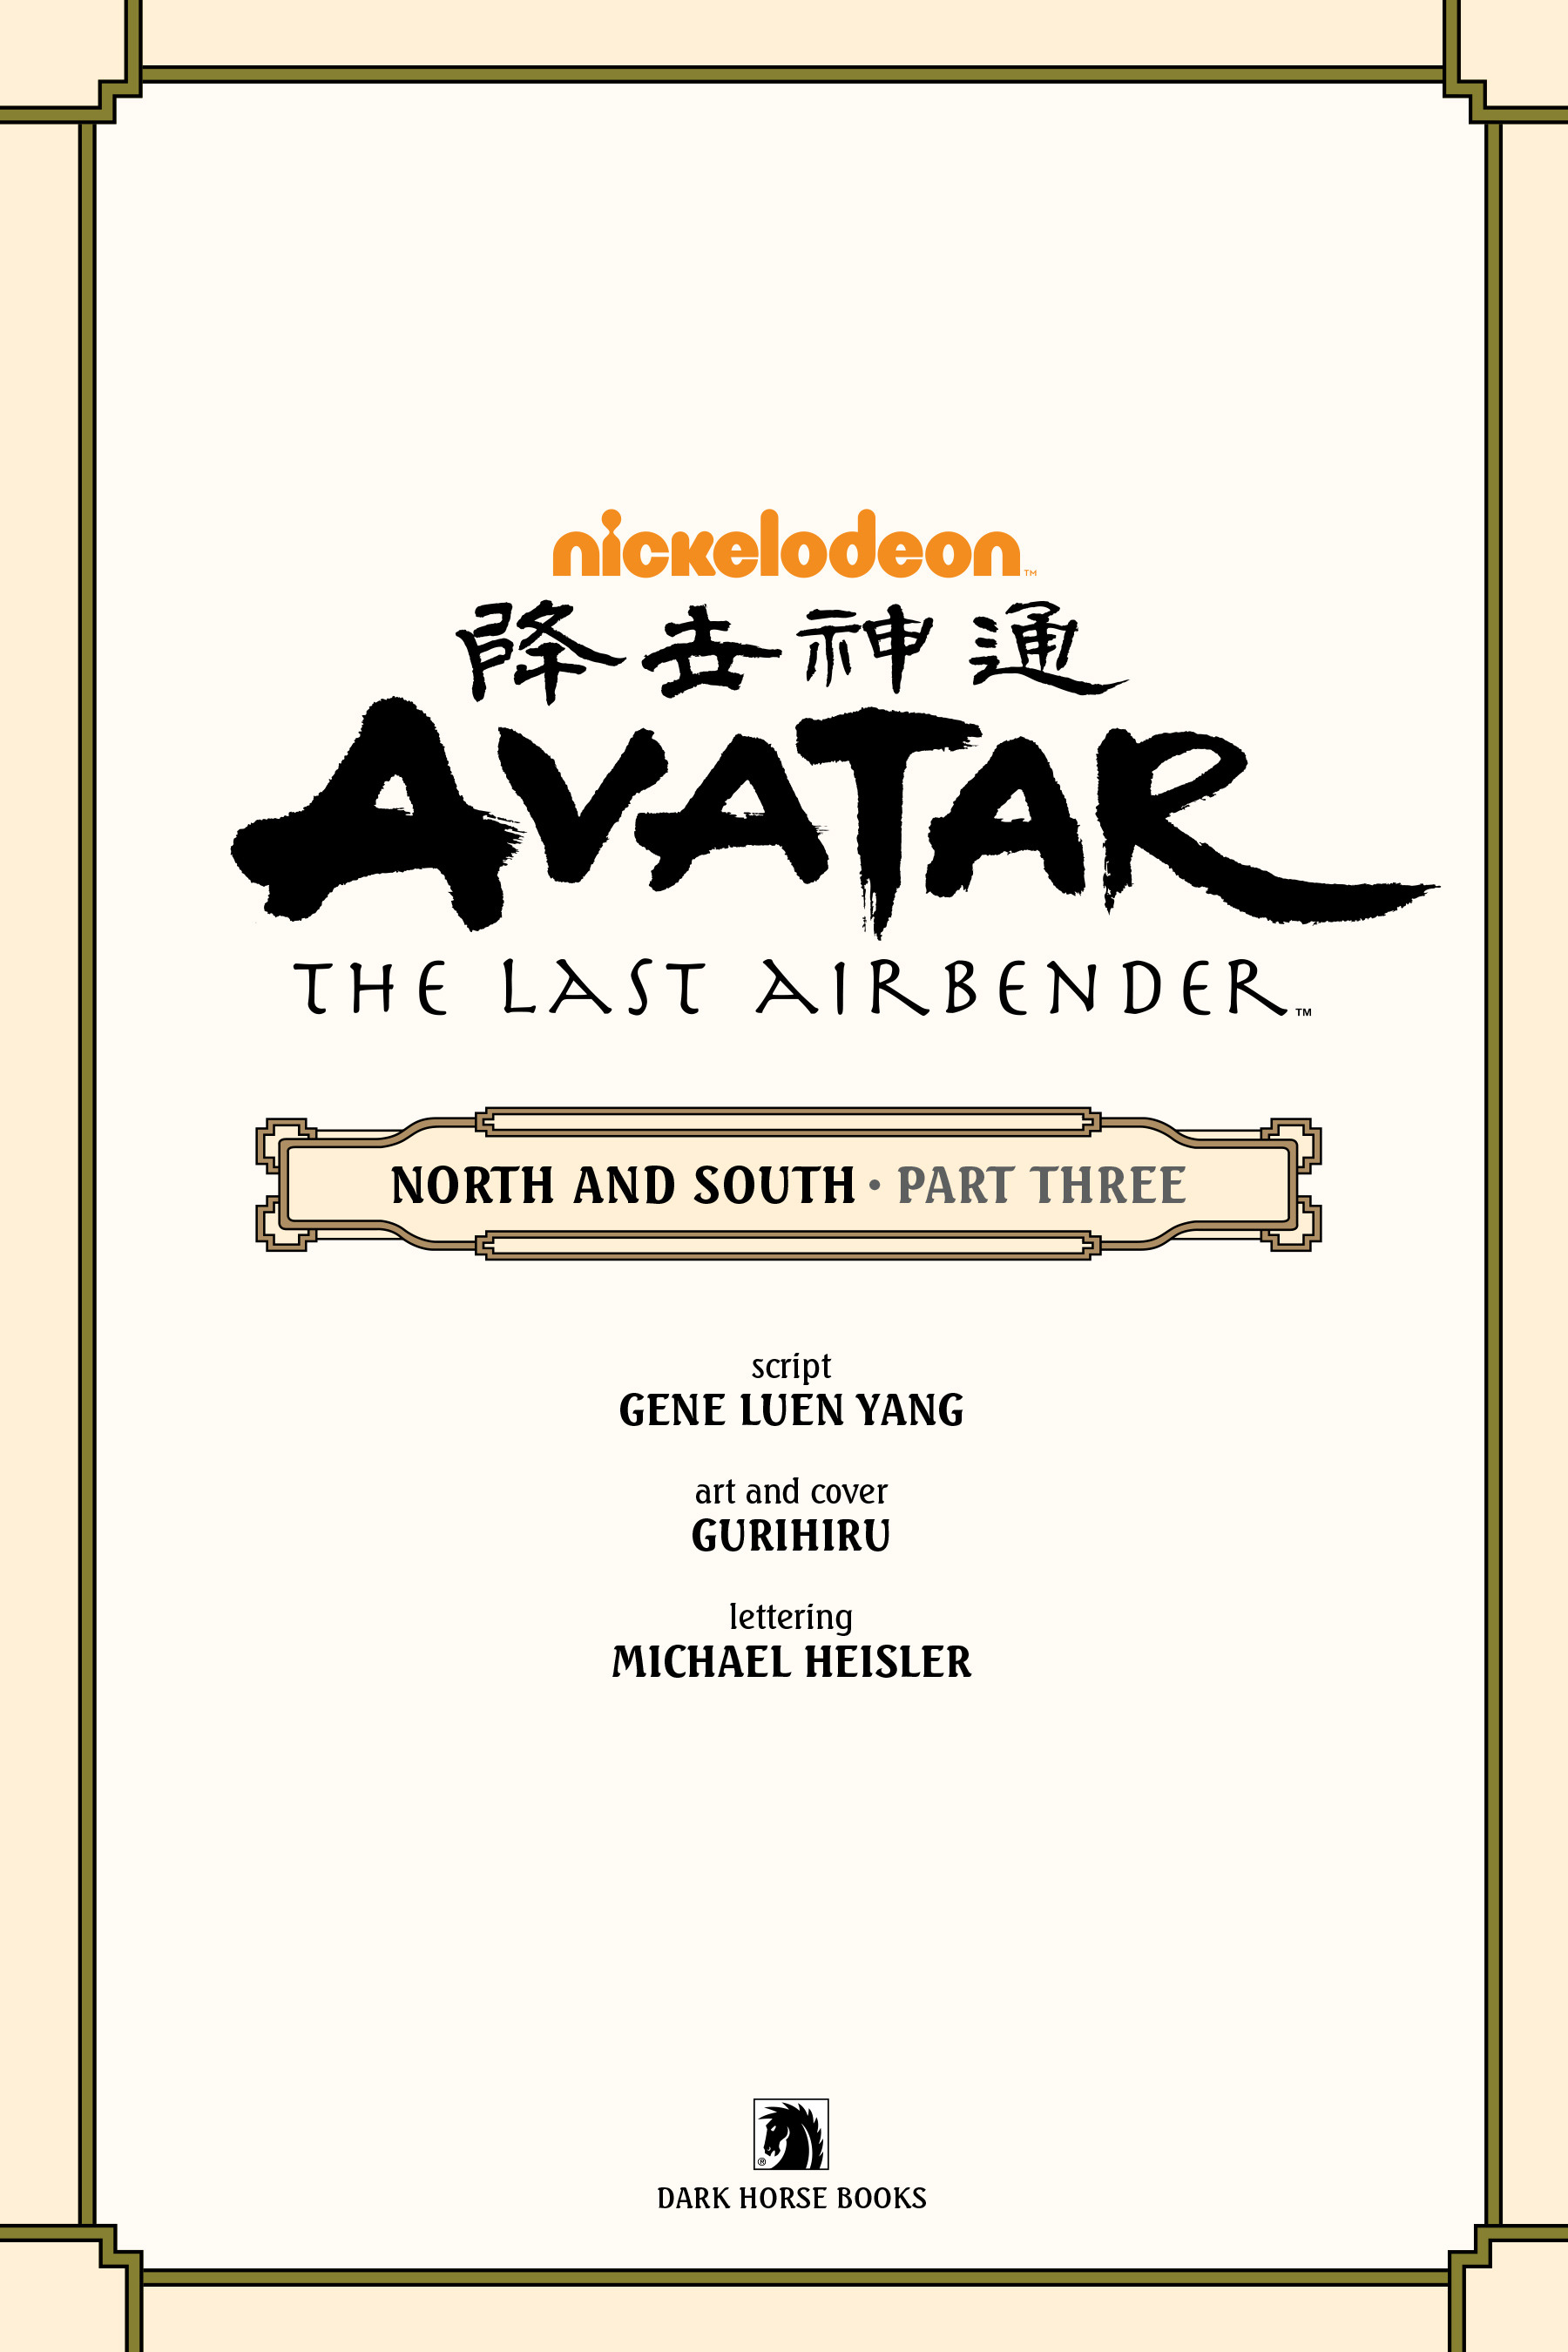 Read online Nickelodeon Avatar: The Last Airbender - North and South comic -  Issue #3 - 4